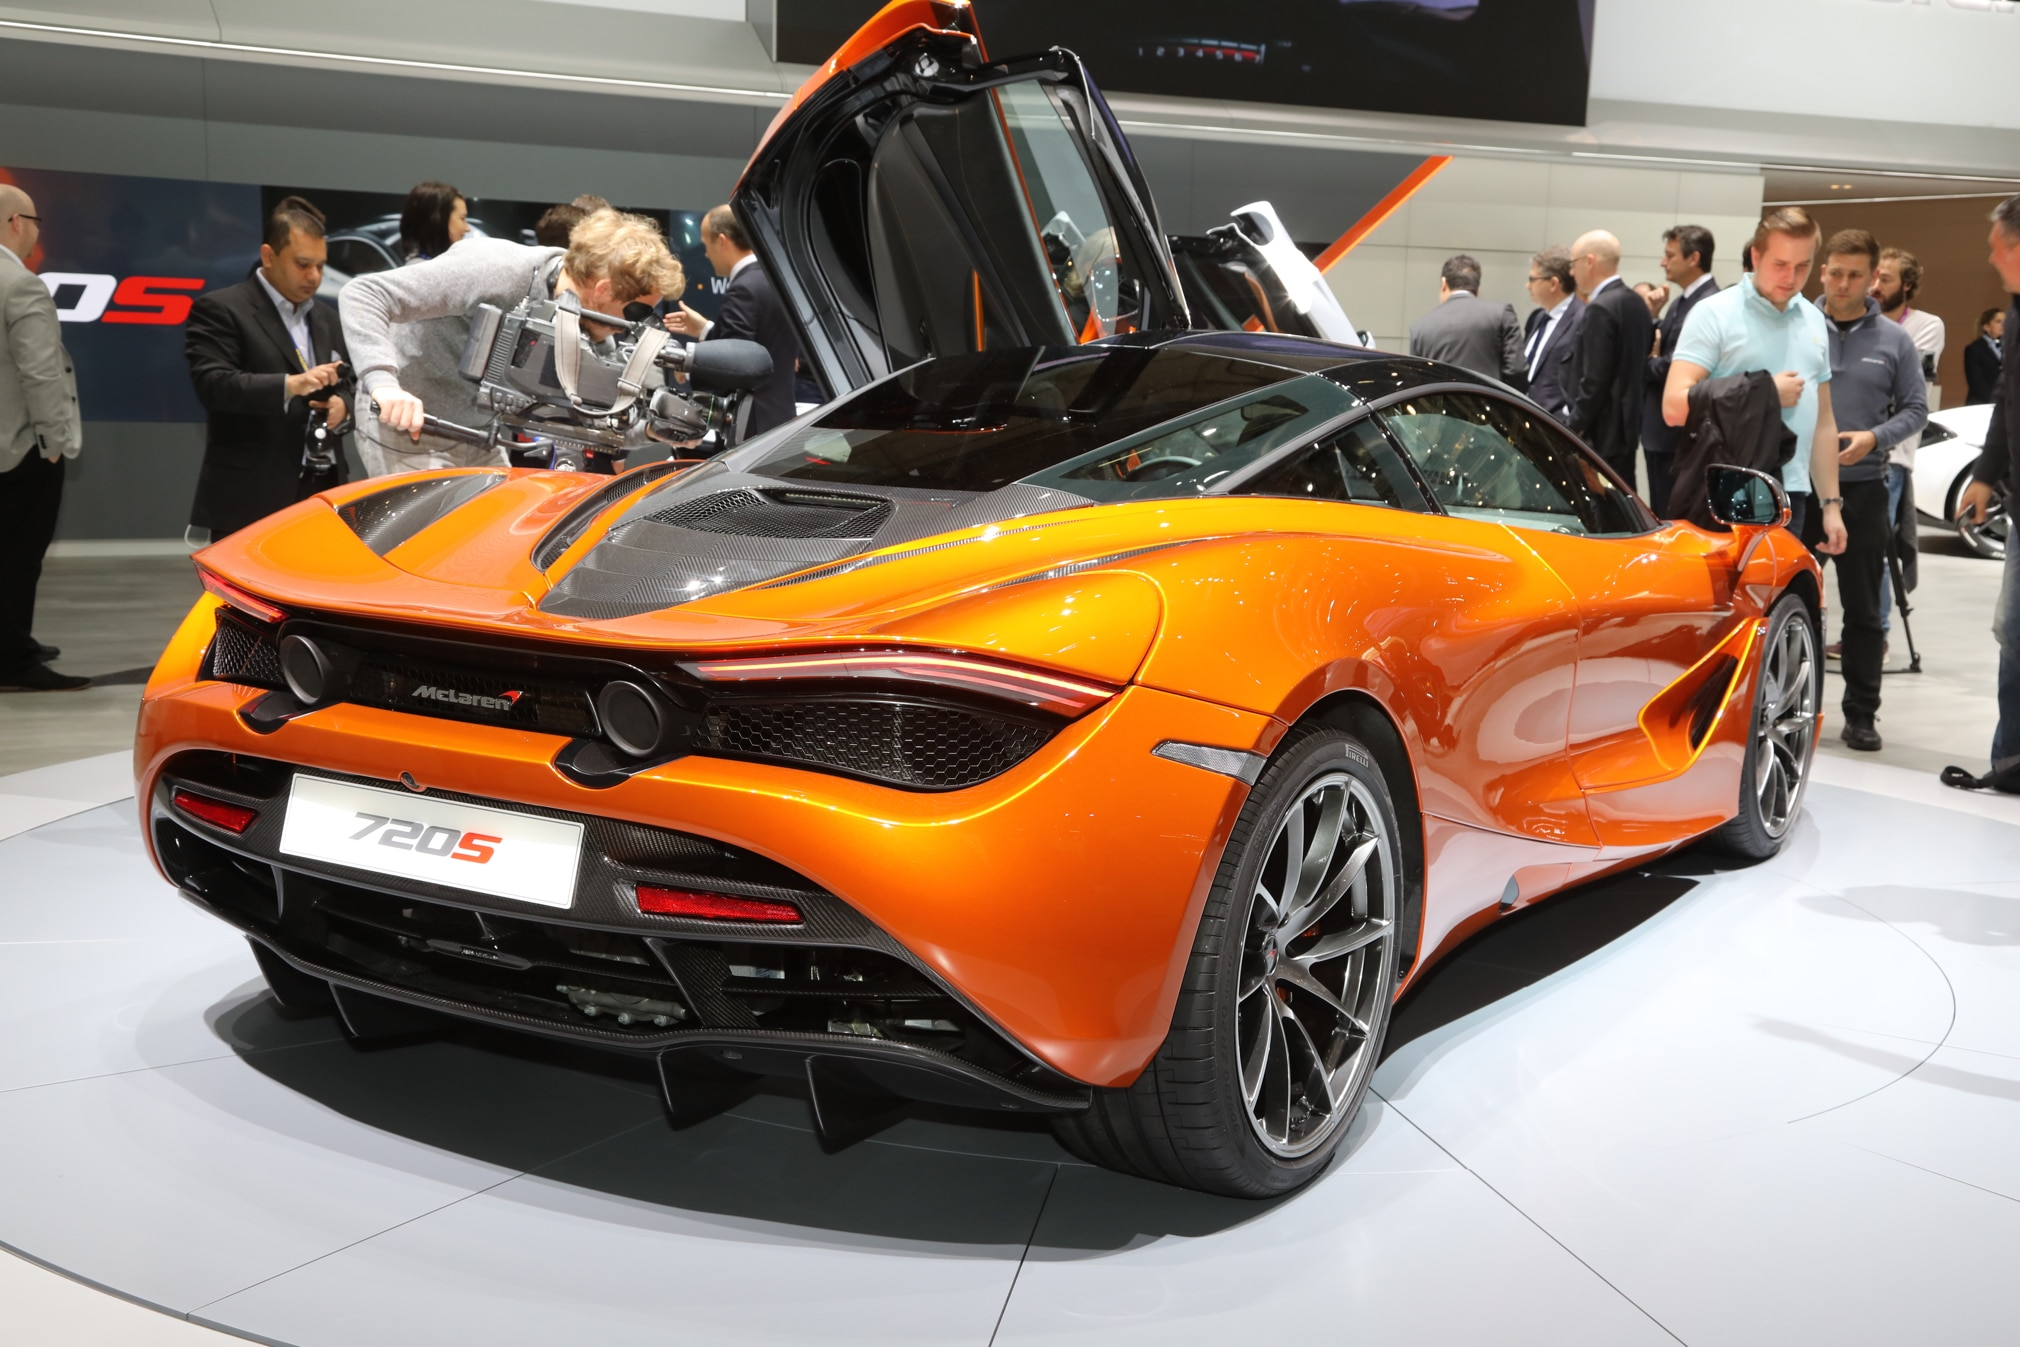 2018 McLaren 720S Rear Three Quarter 2